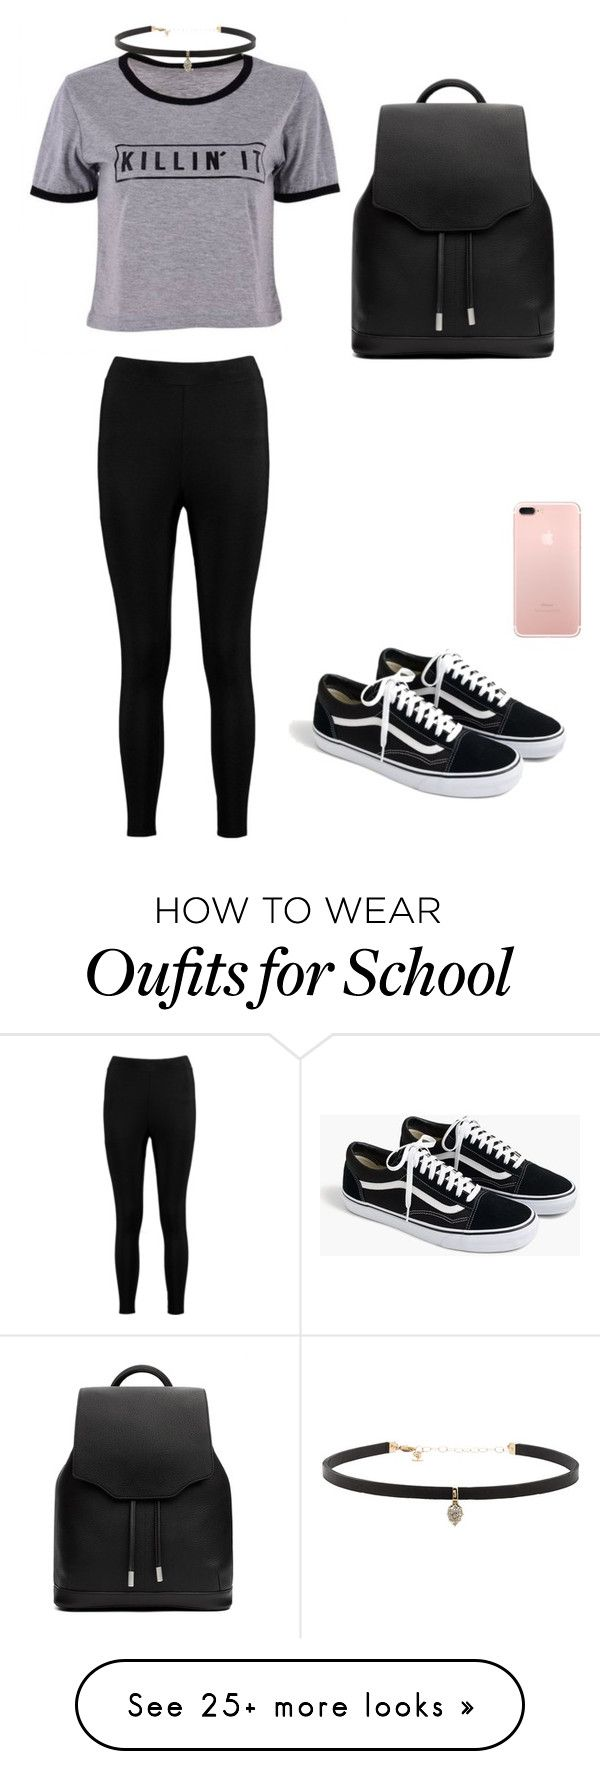 """School outfit #1"" by bobuglo on Polyvore featuring Boohoo, J.Crew, rag & bone and Carbon & Hyde"